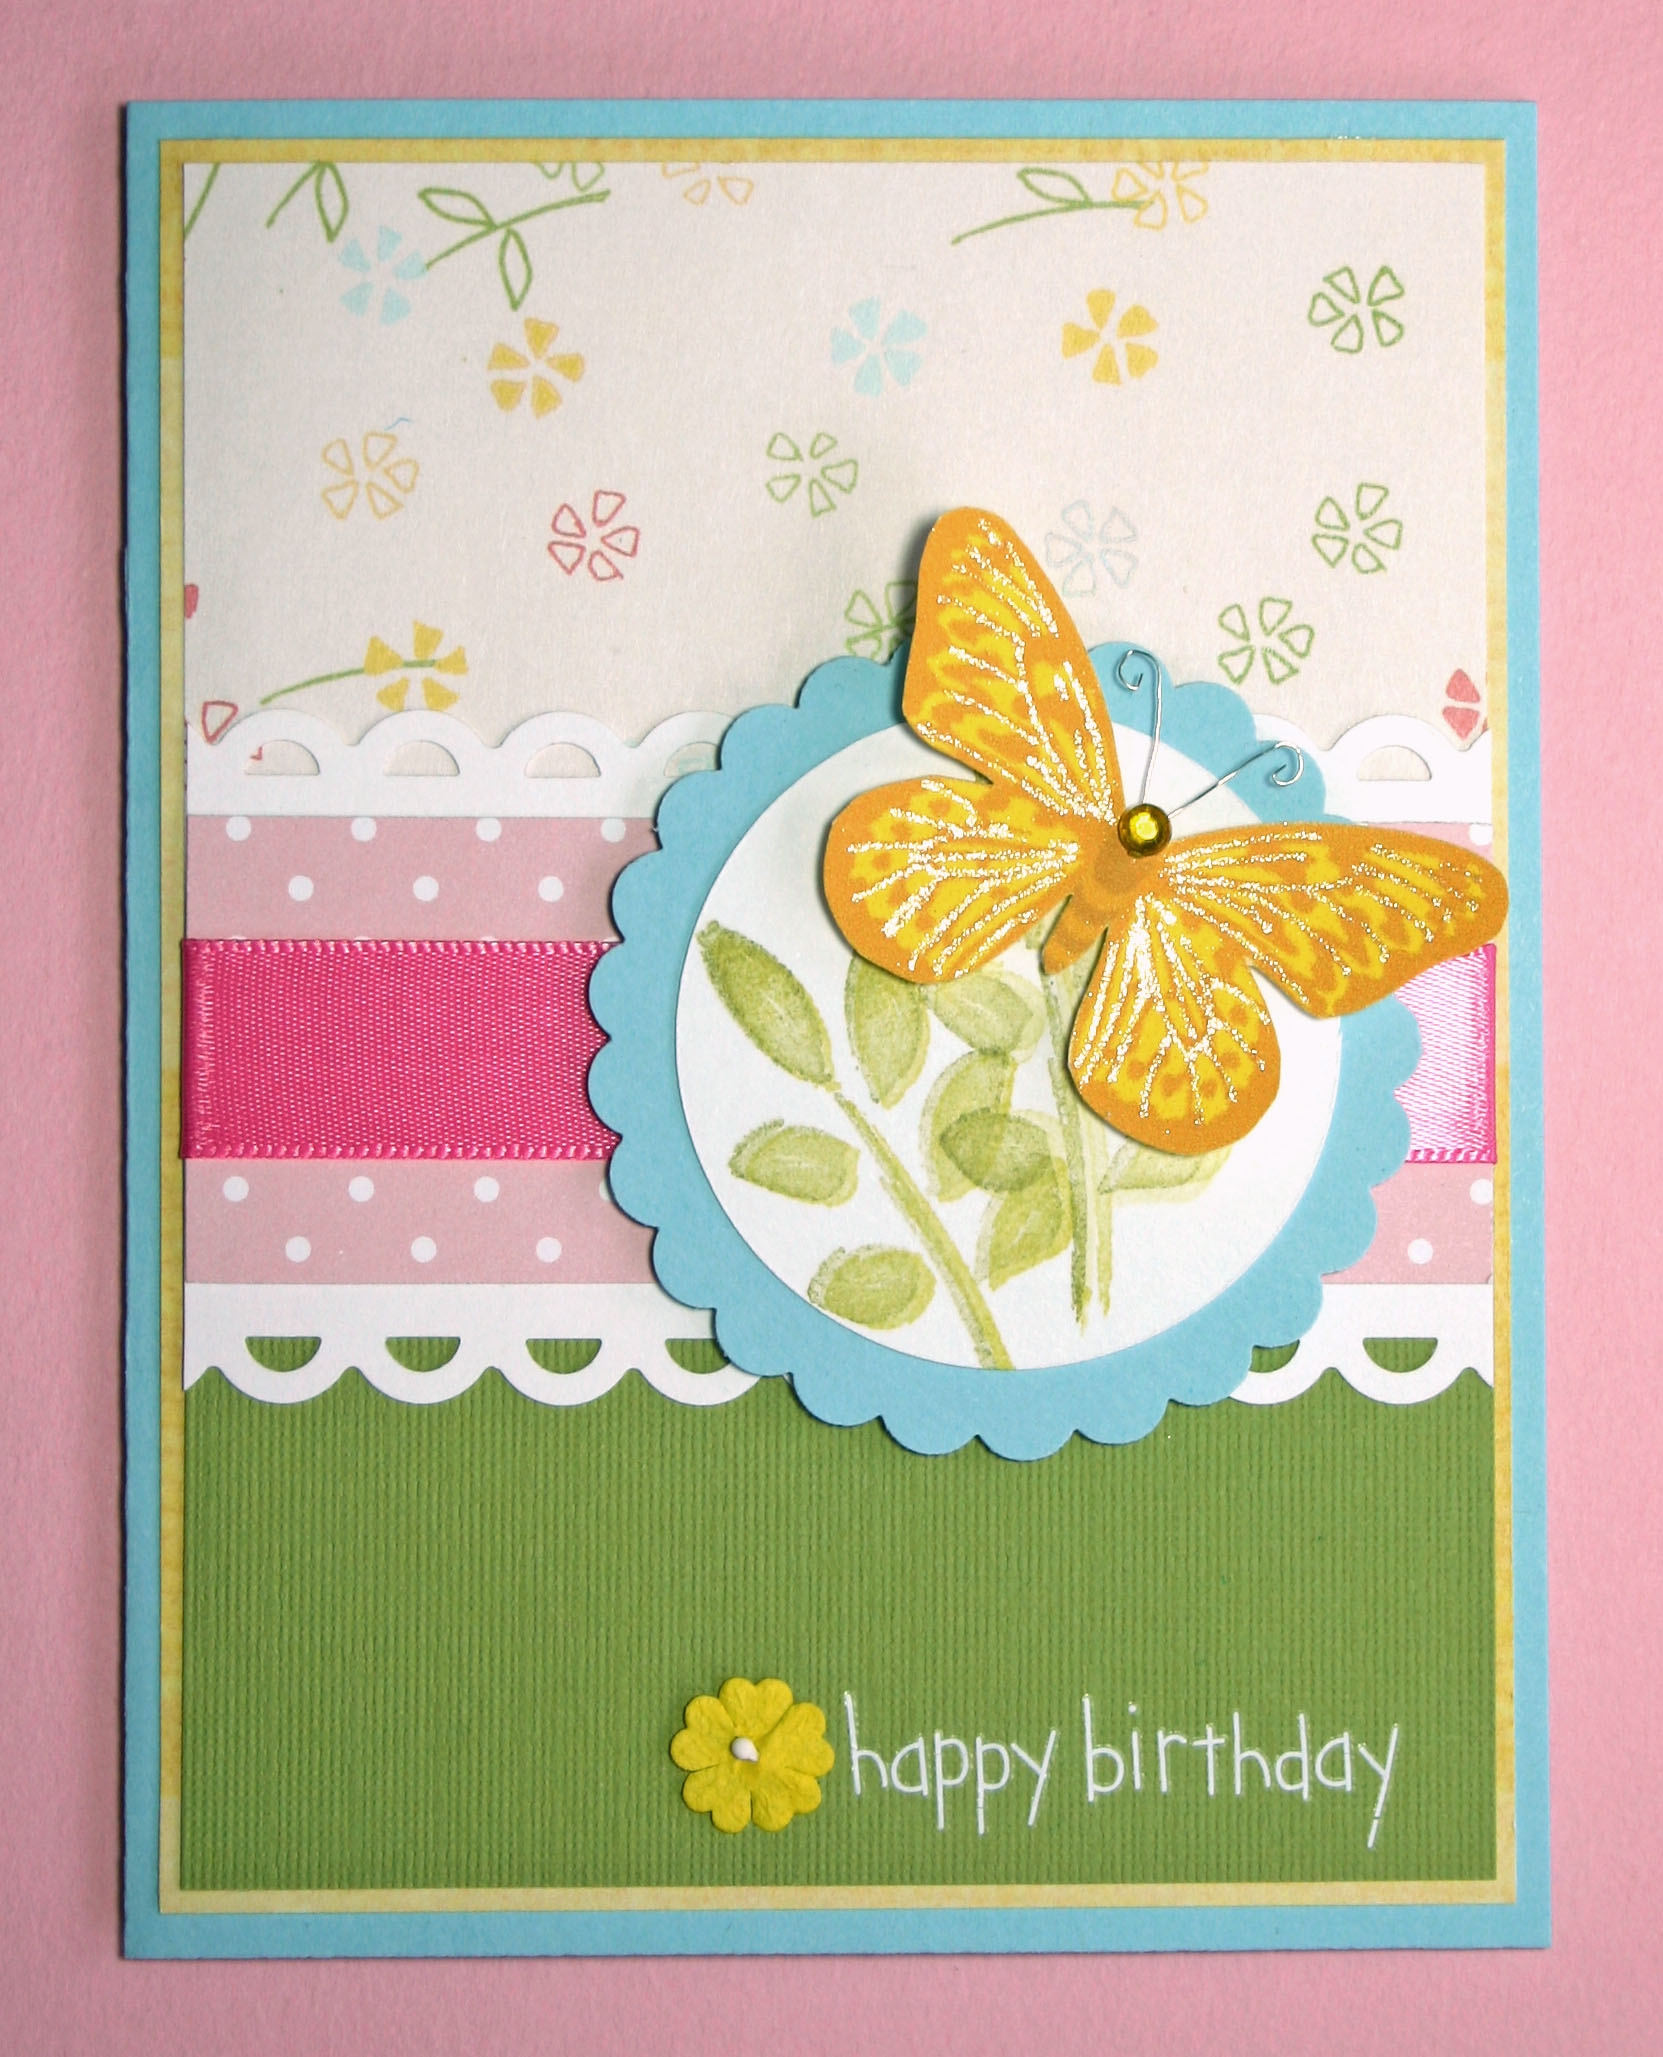 greeting cards for birthday design ; Birthday-Greeting-Card-To-Friend-and-get-inspired-to-create-your-own-birthday-Card-design-with-this-ideas-14